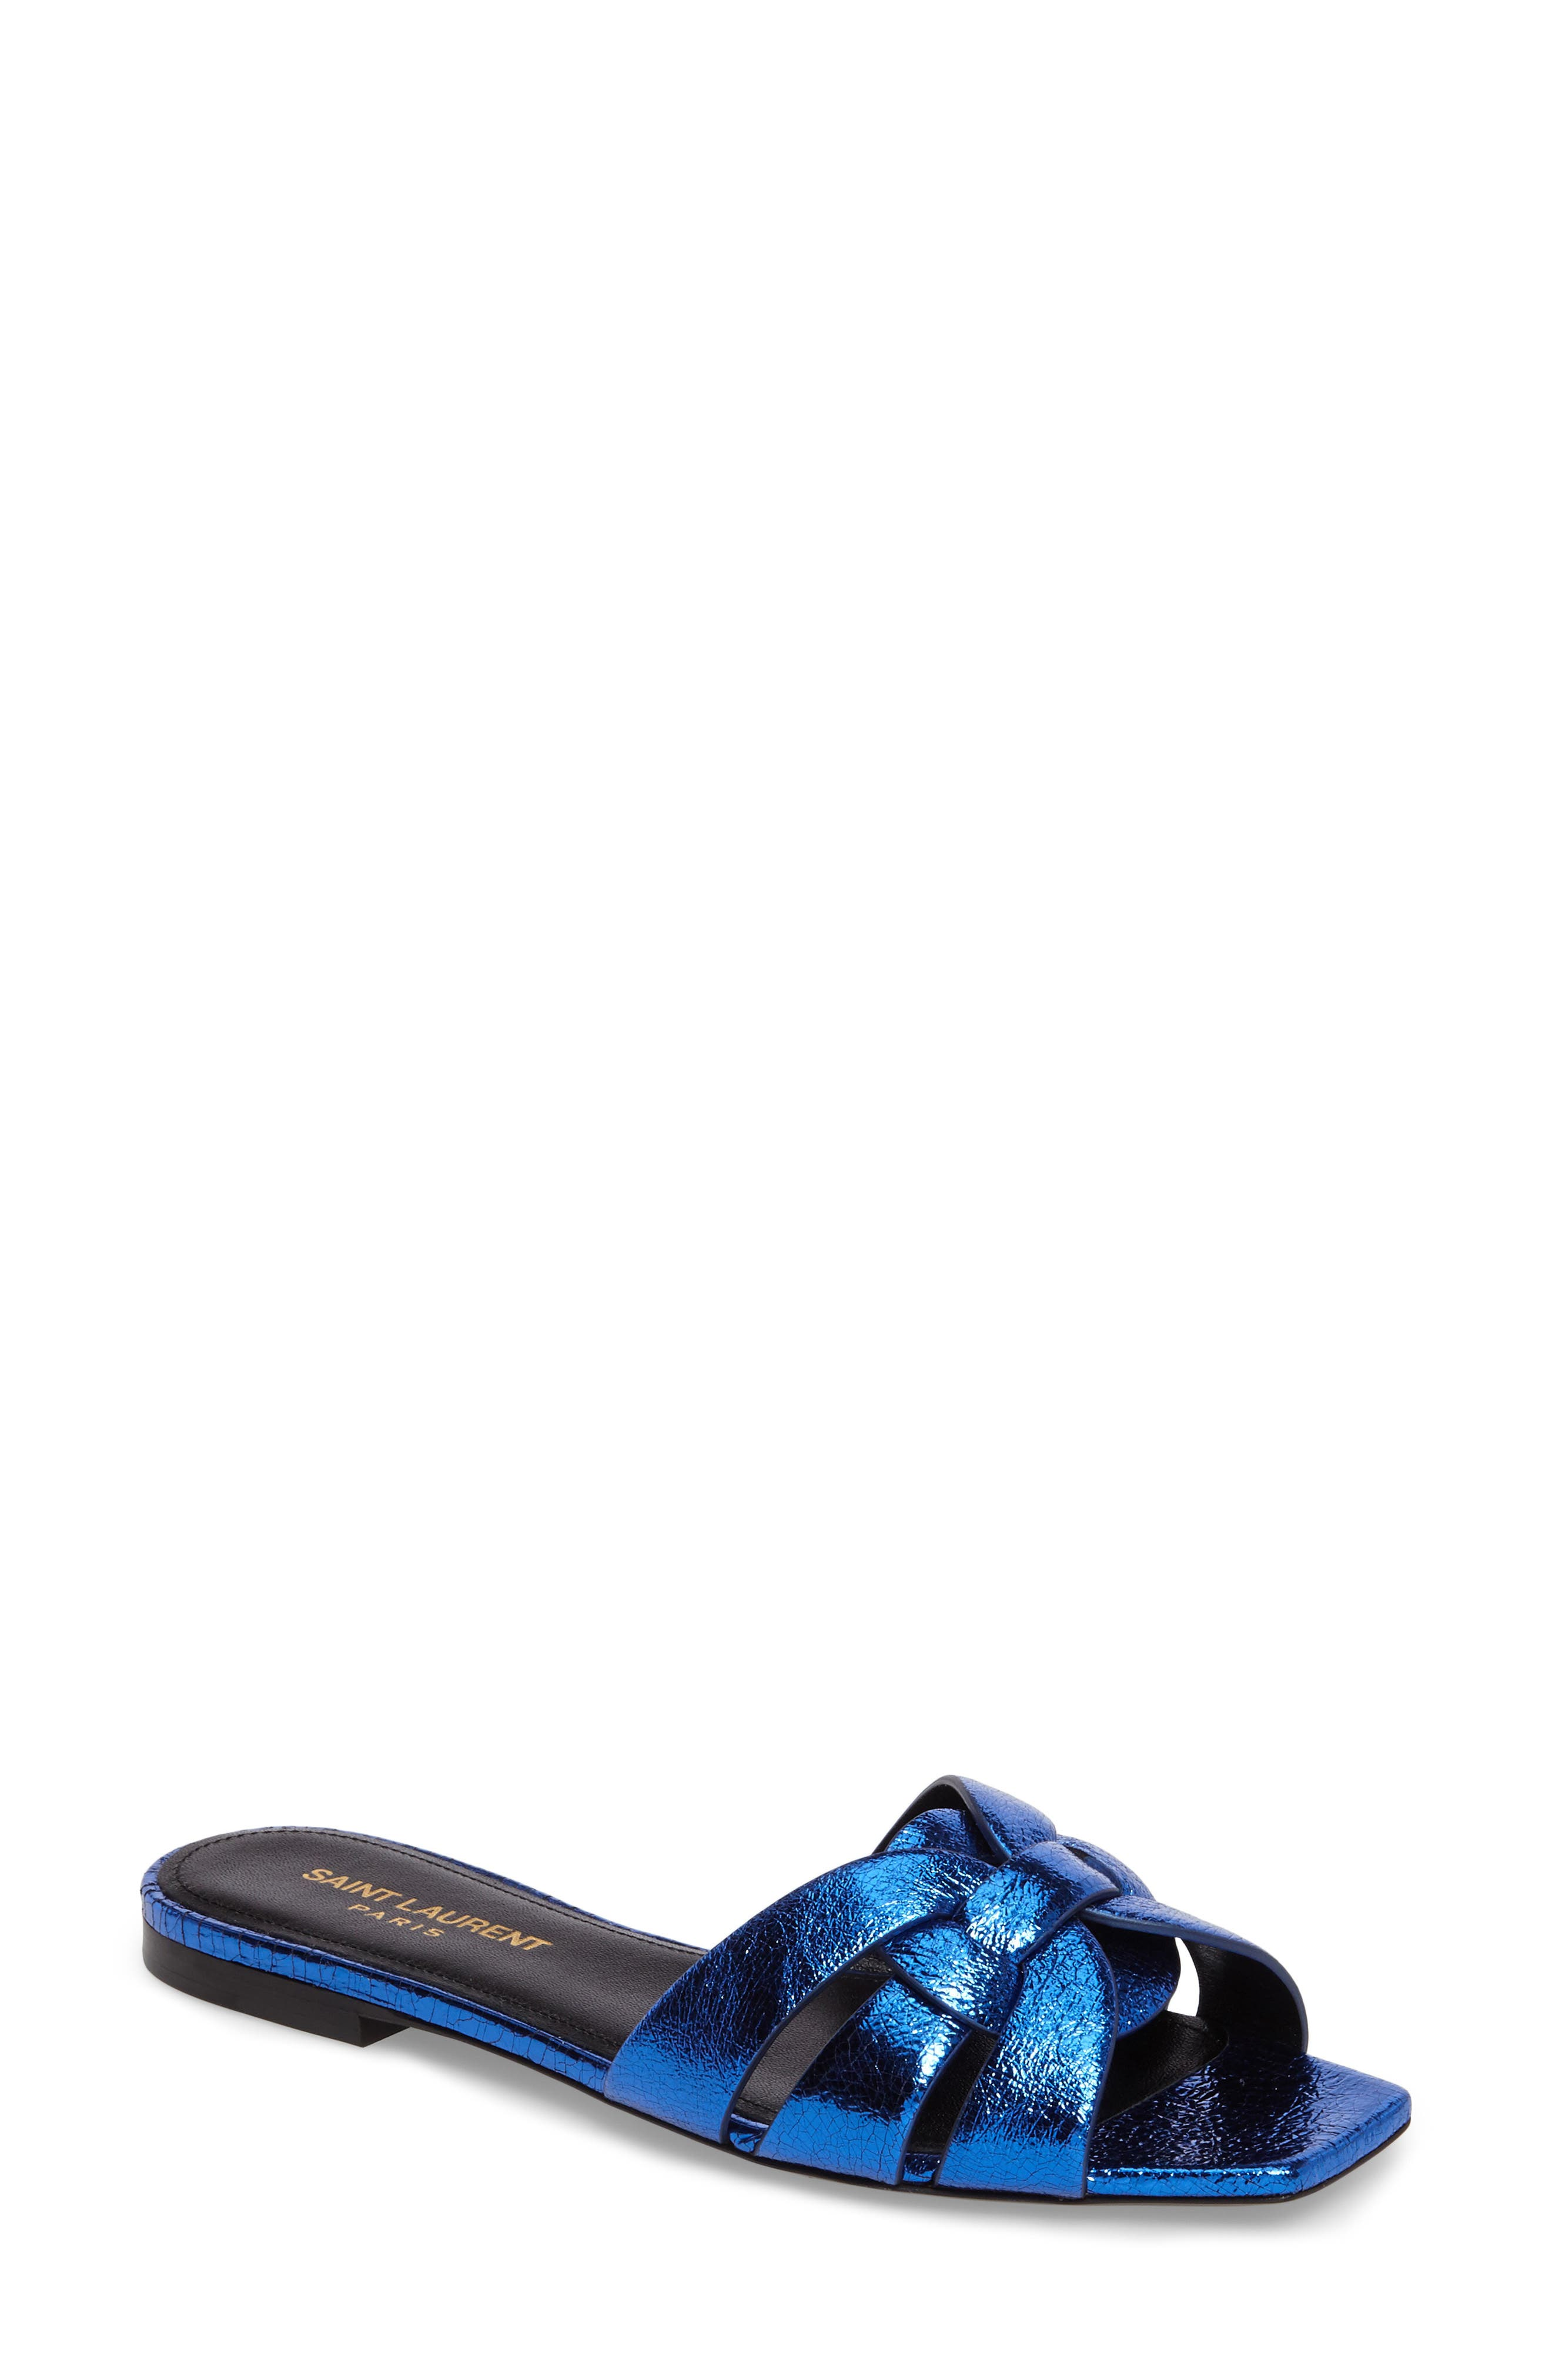 Saint Laurent Pieds Metallic Slide Sandal (Women)